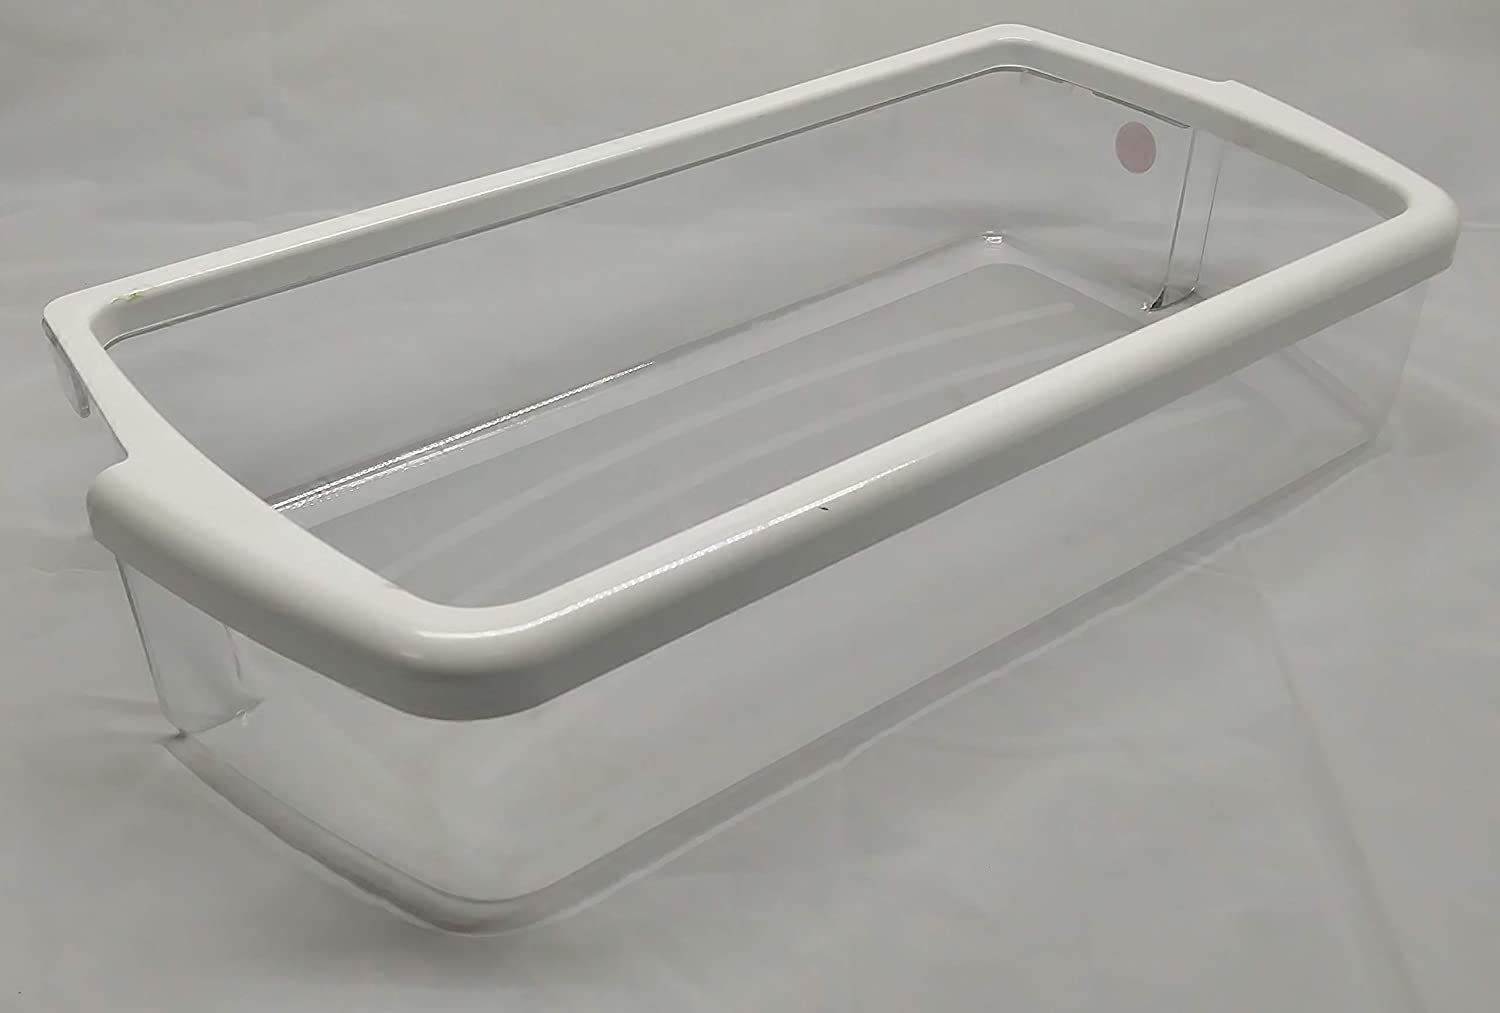 (BABILL) New! W10321304 WPW10321304 Replacement Door Shelf Bin for Whirlpool Refrigerator